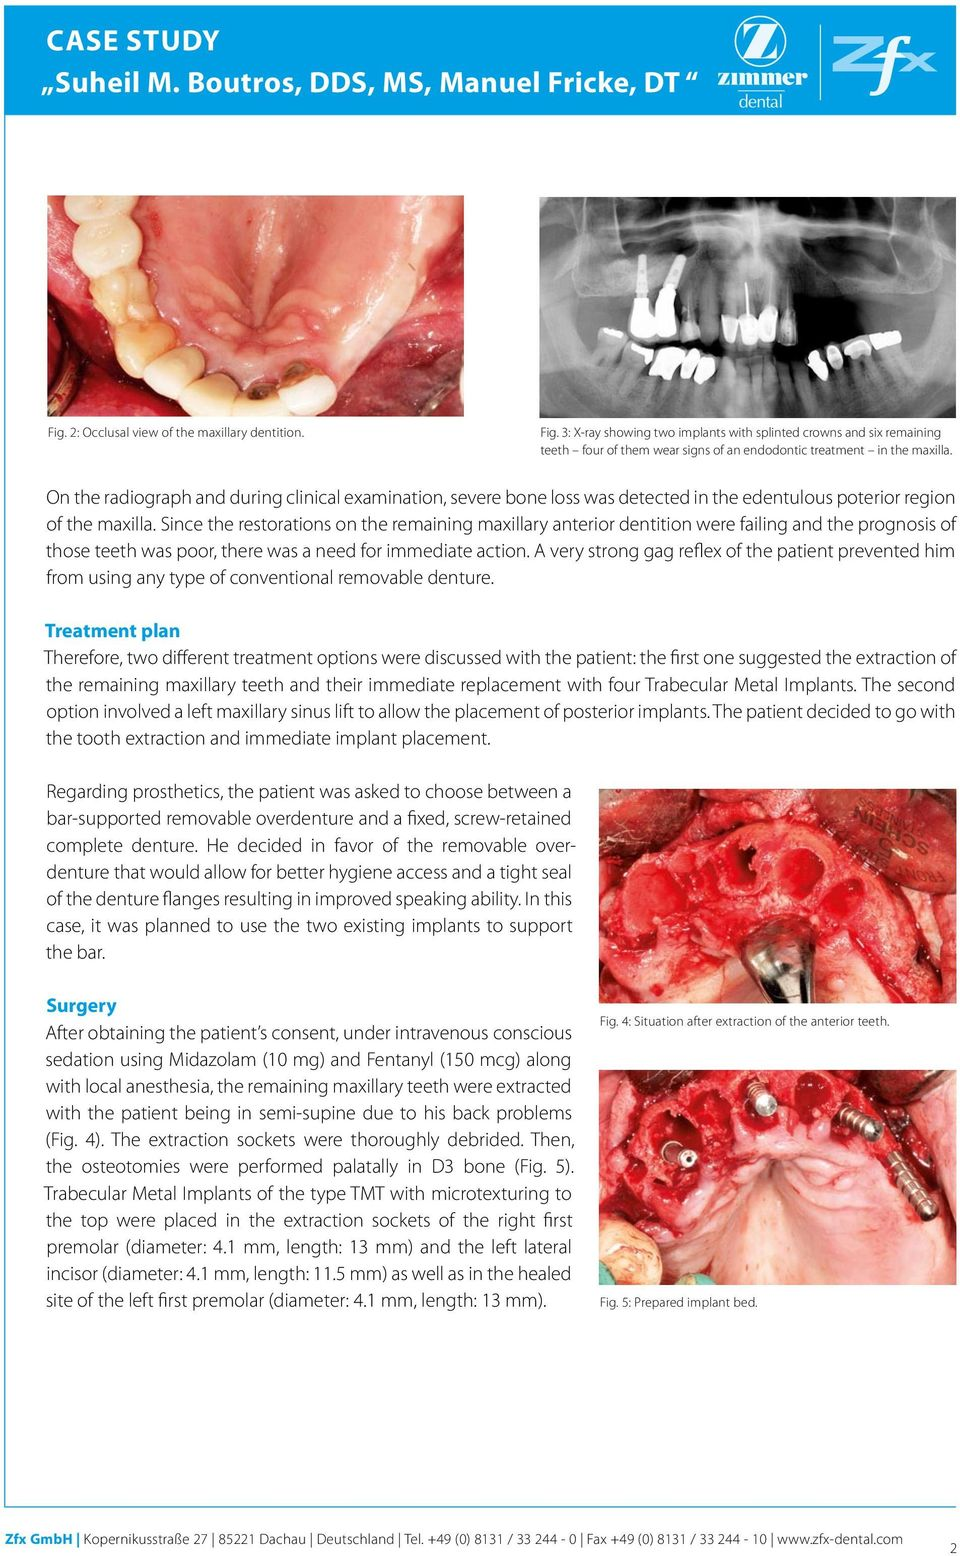 Since the restorations on the remaining maxillary anterior dentition were failing and the prognosis of those teeth was poor, there was a need for immediate action.